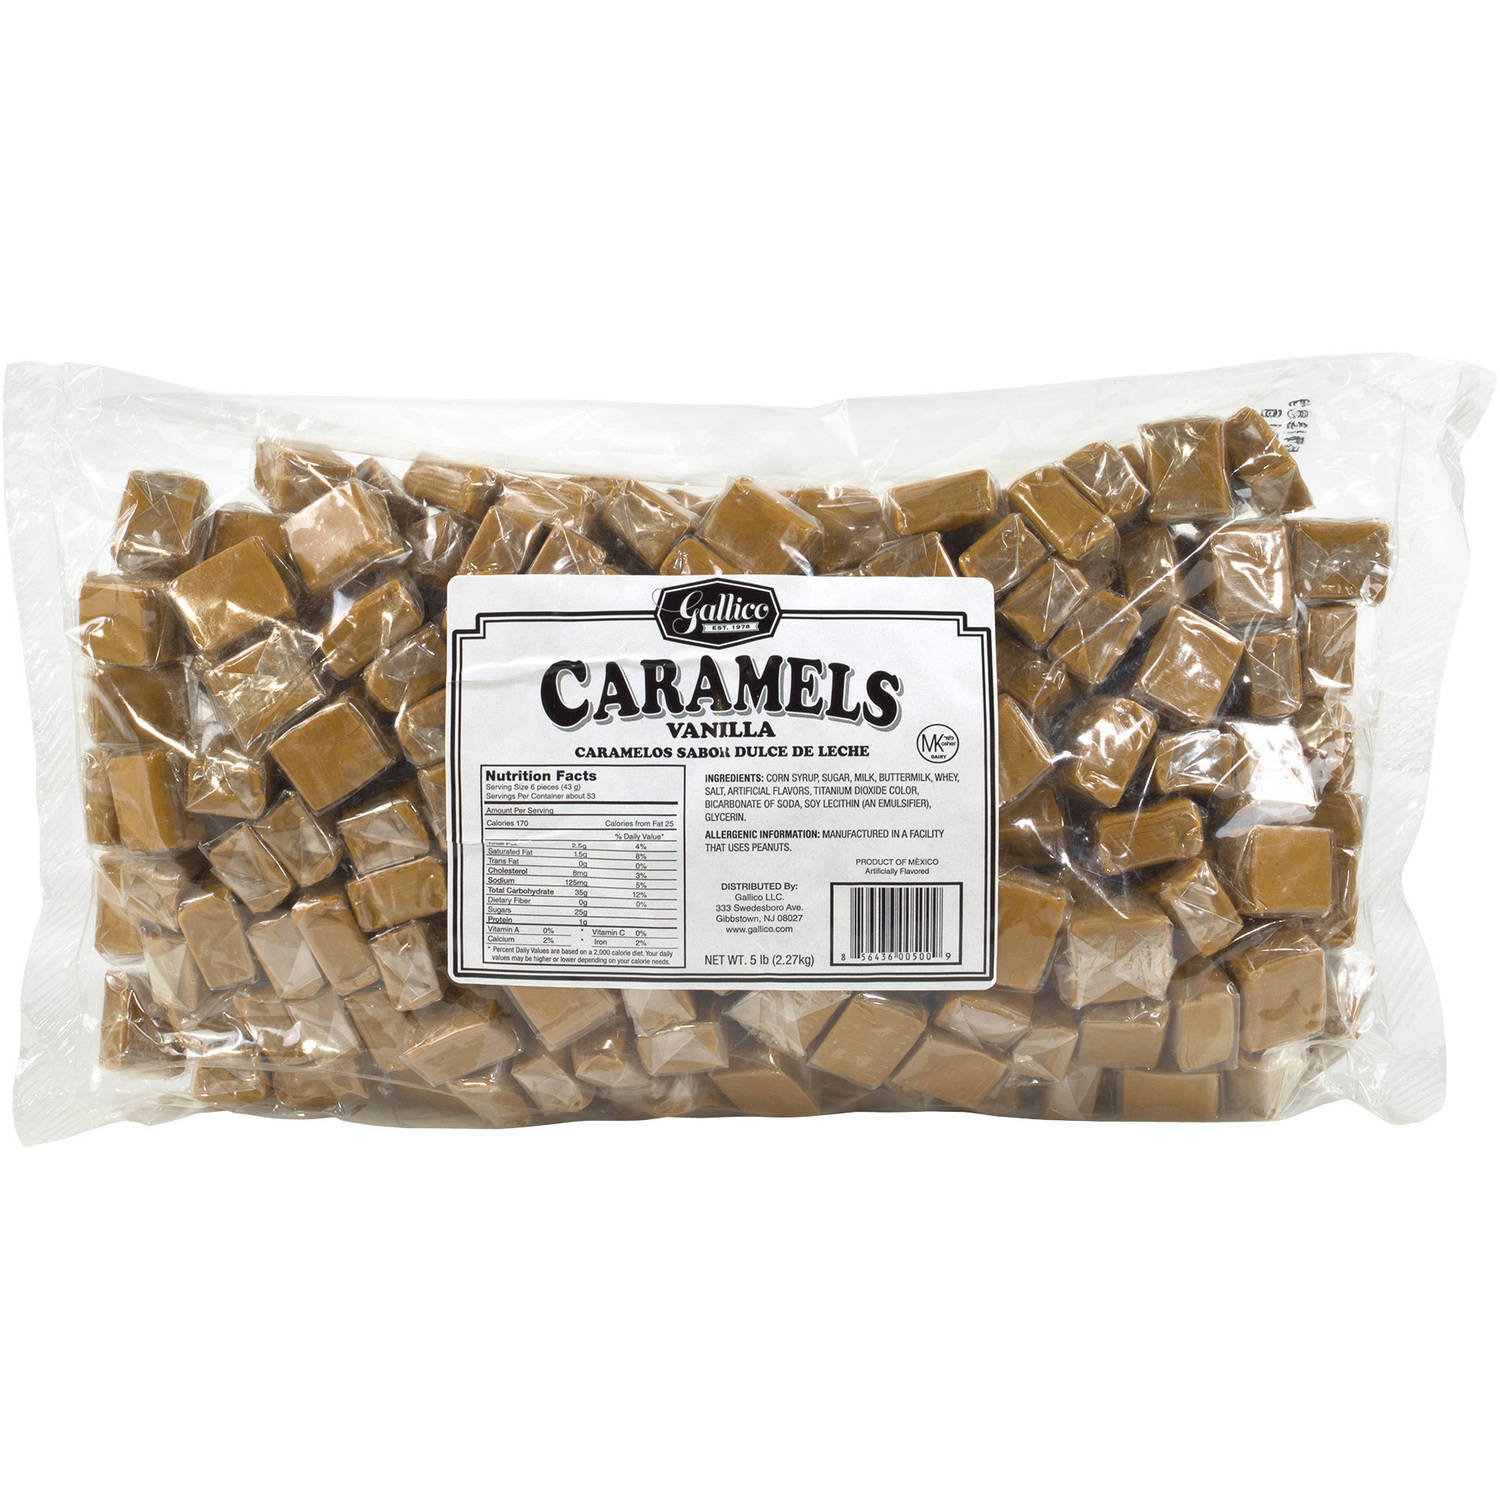 Gallico Vanilla Caramels, 5 lbs by